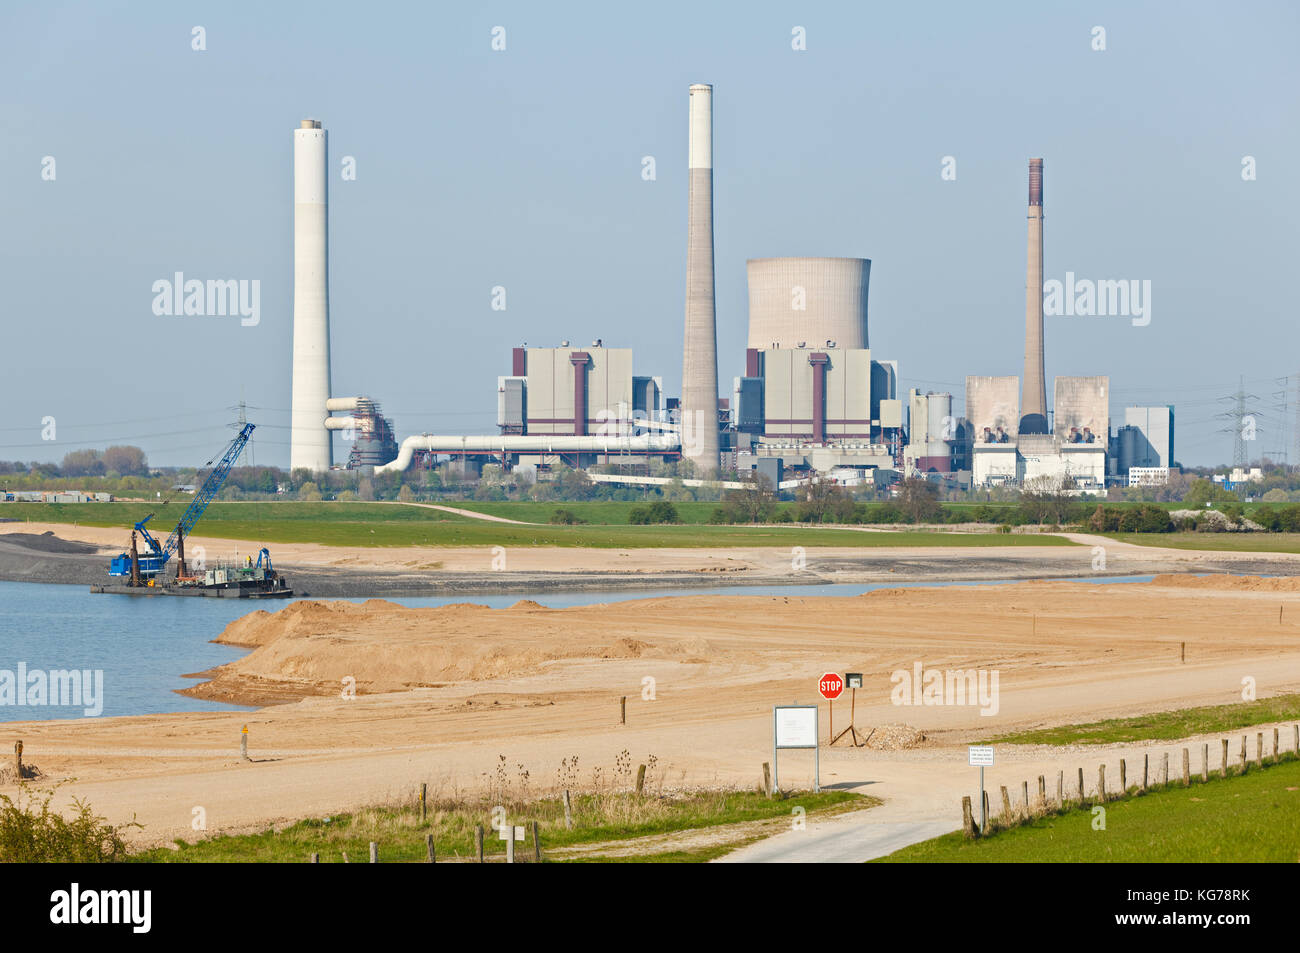 Gravel industry landscape in front of a large power station at the Rhine River. - Stock Image